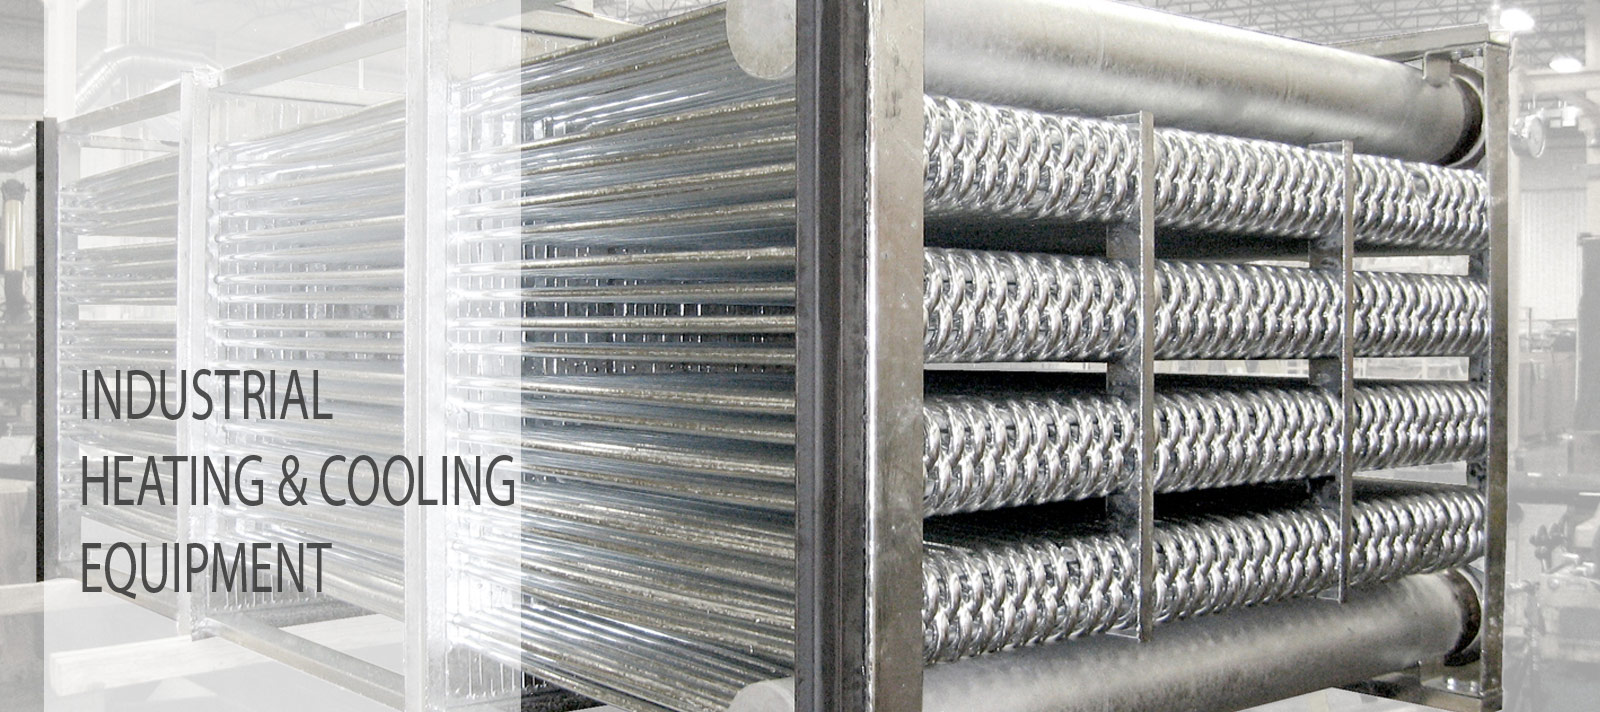 Industrial Heating and Cooling Equipment